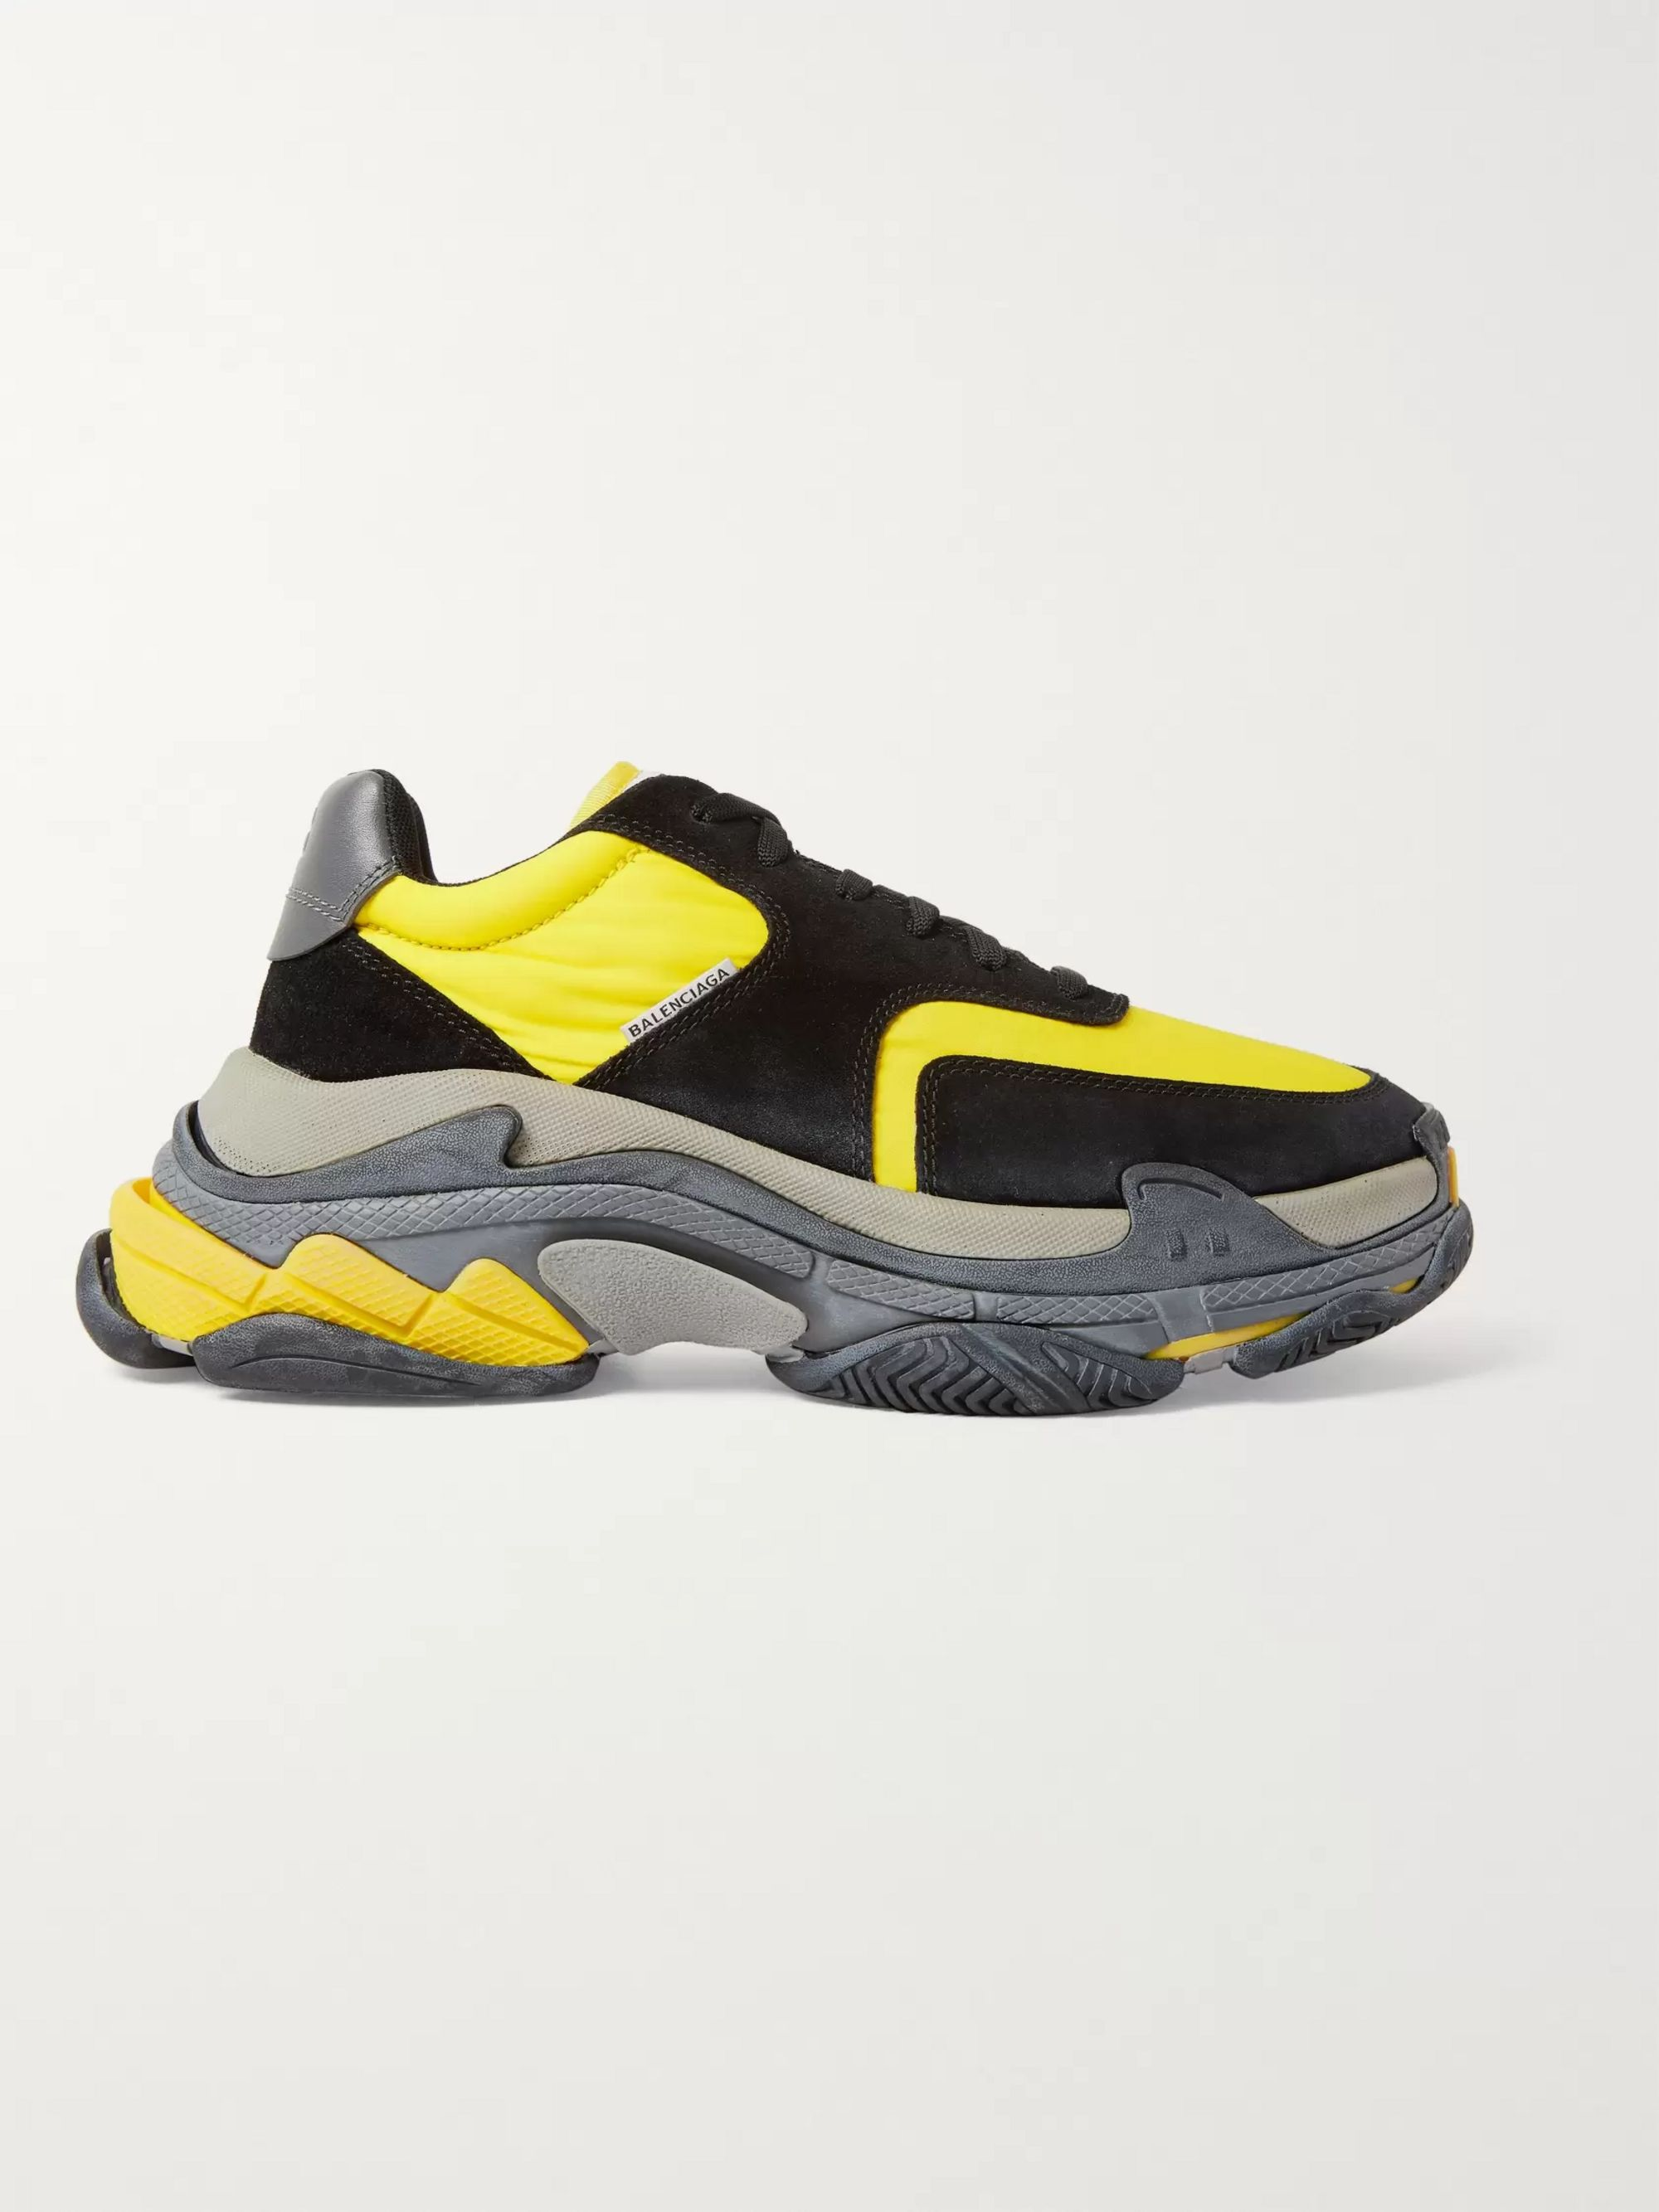 Balenciaga Triple S Nylon, Nubuck and Leather Sneakers